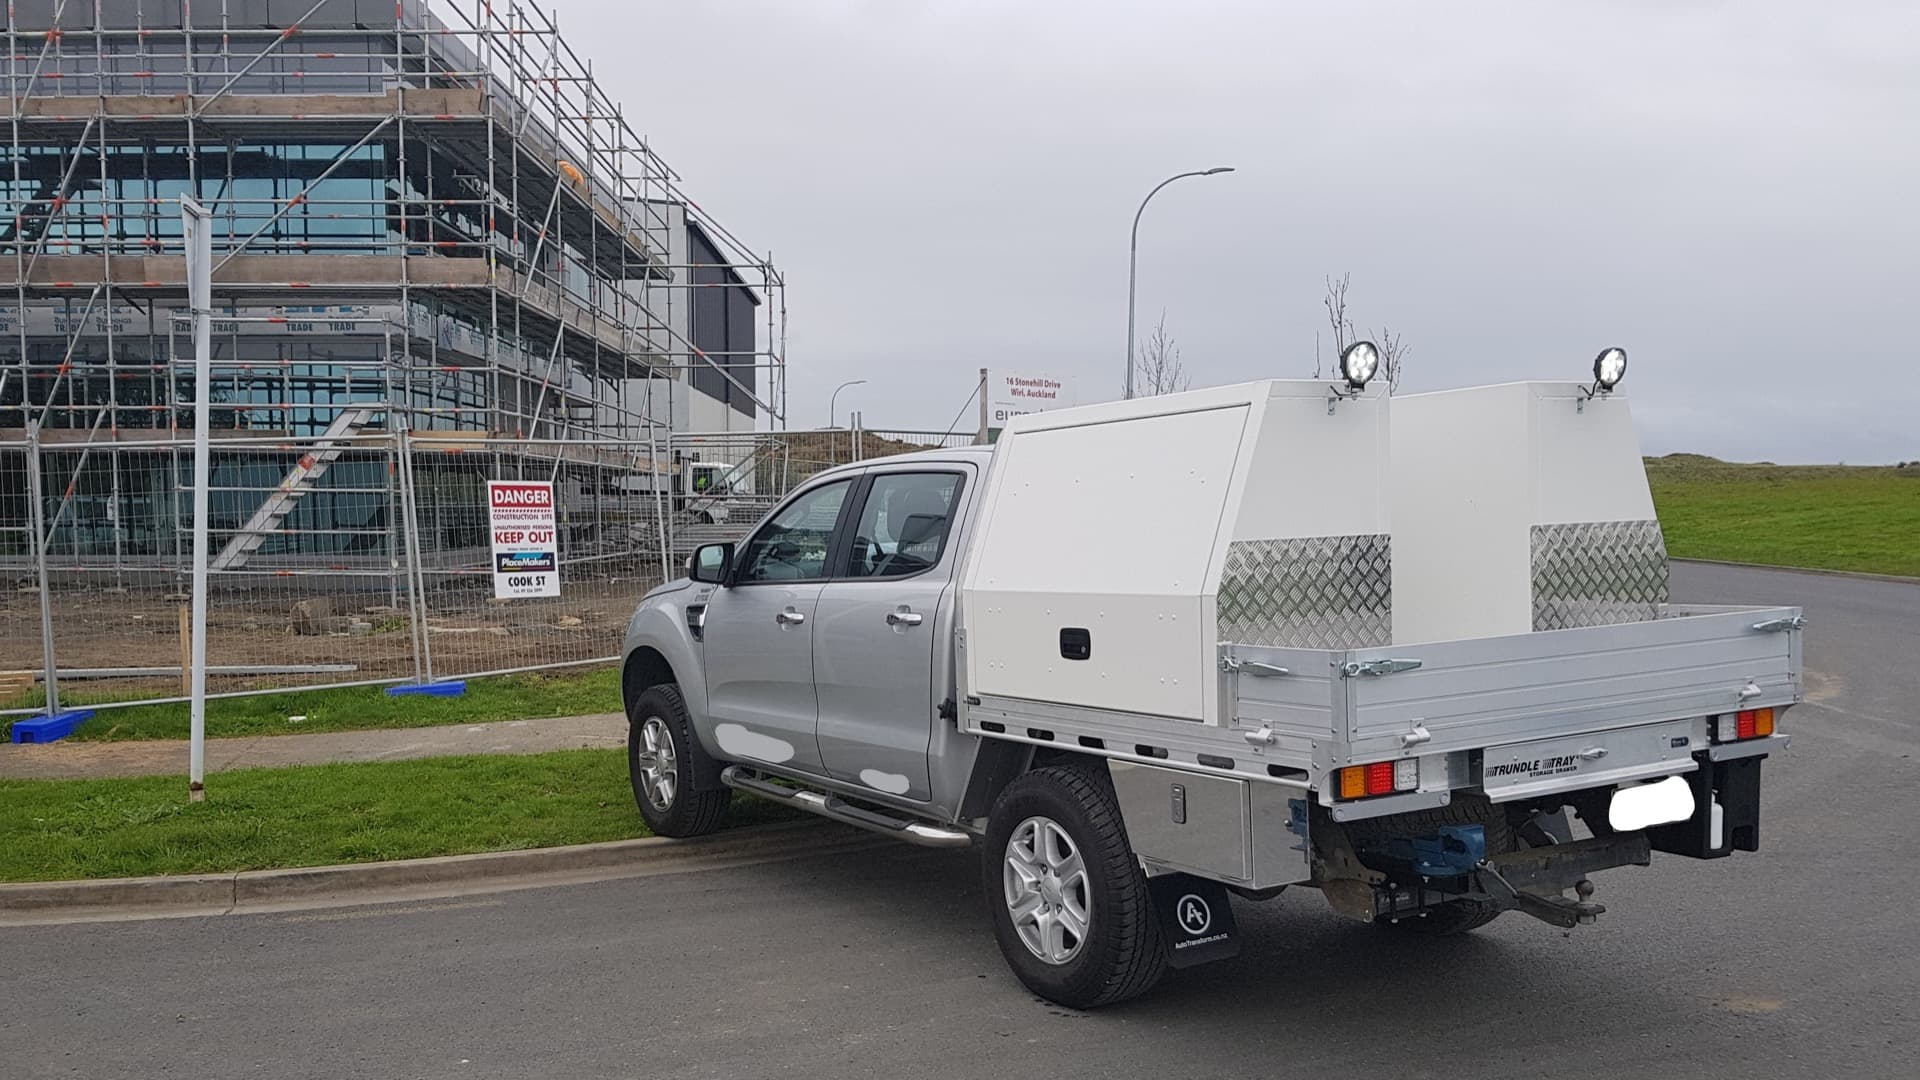 Ute service body with custom side tool boxes